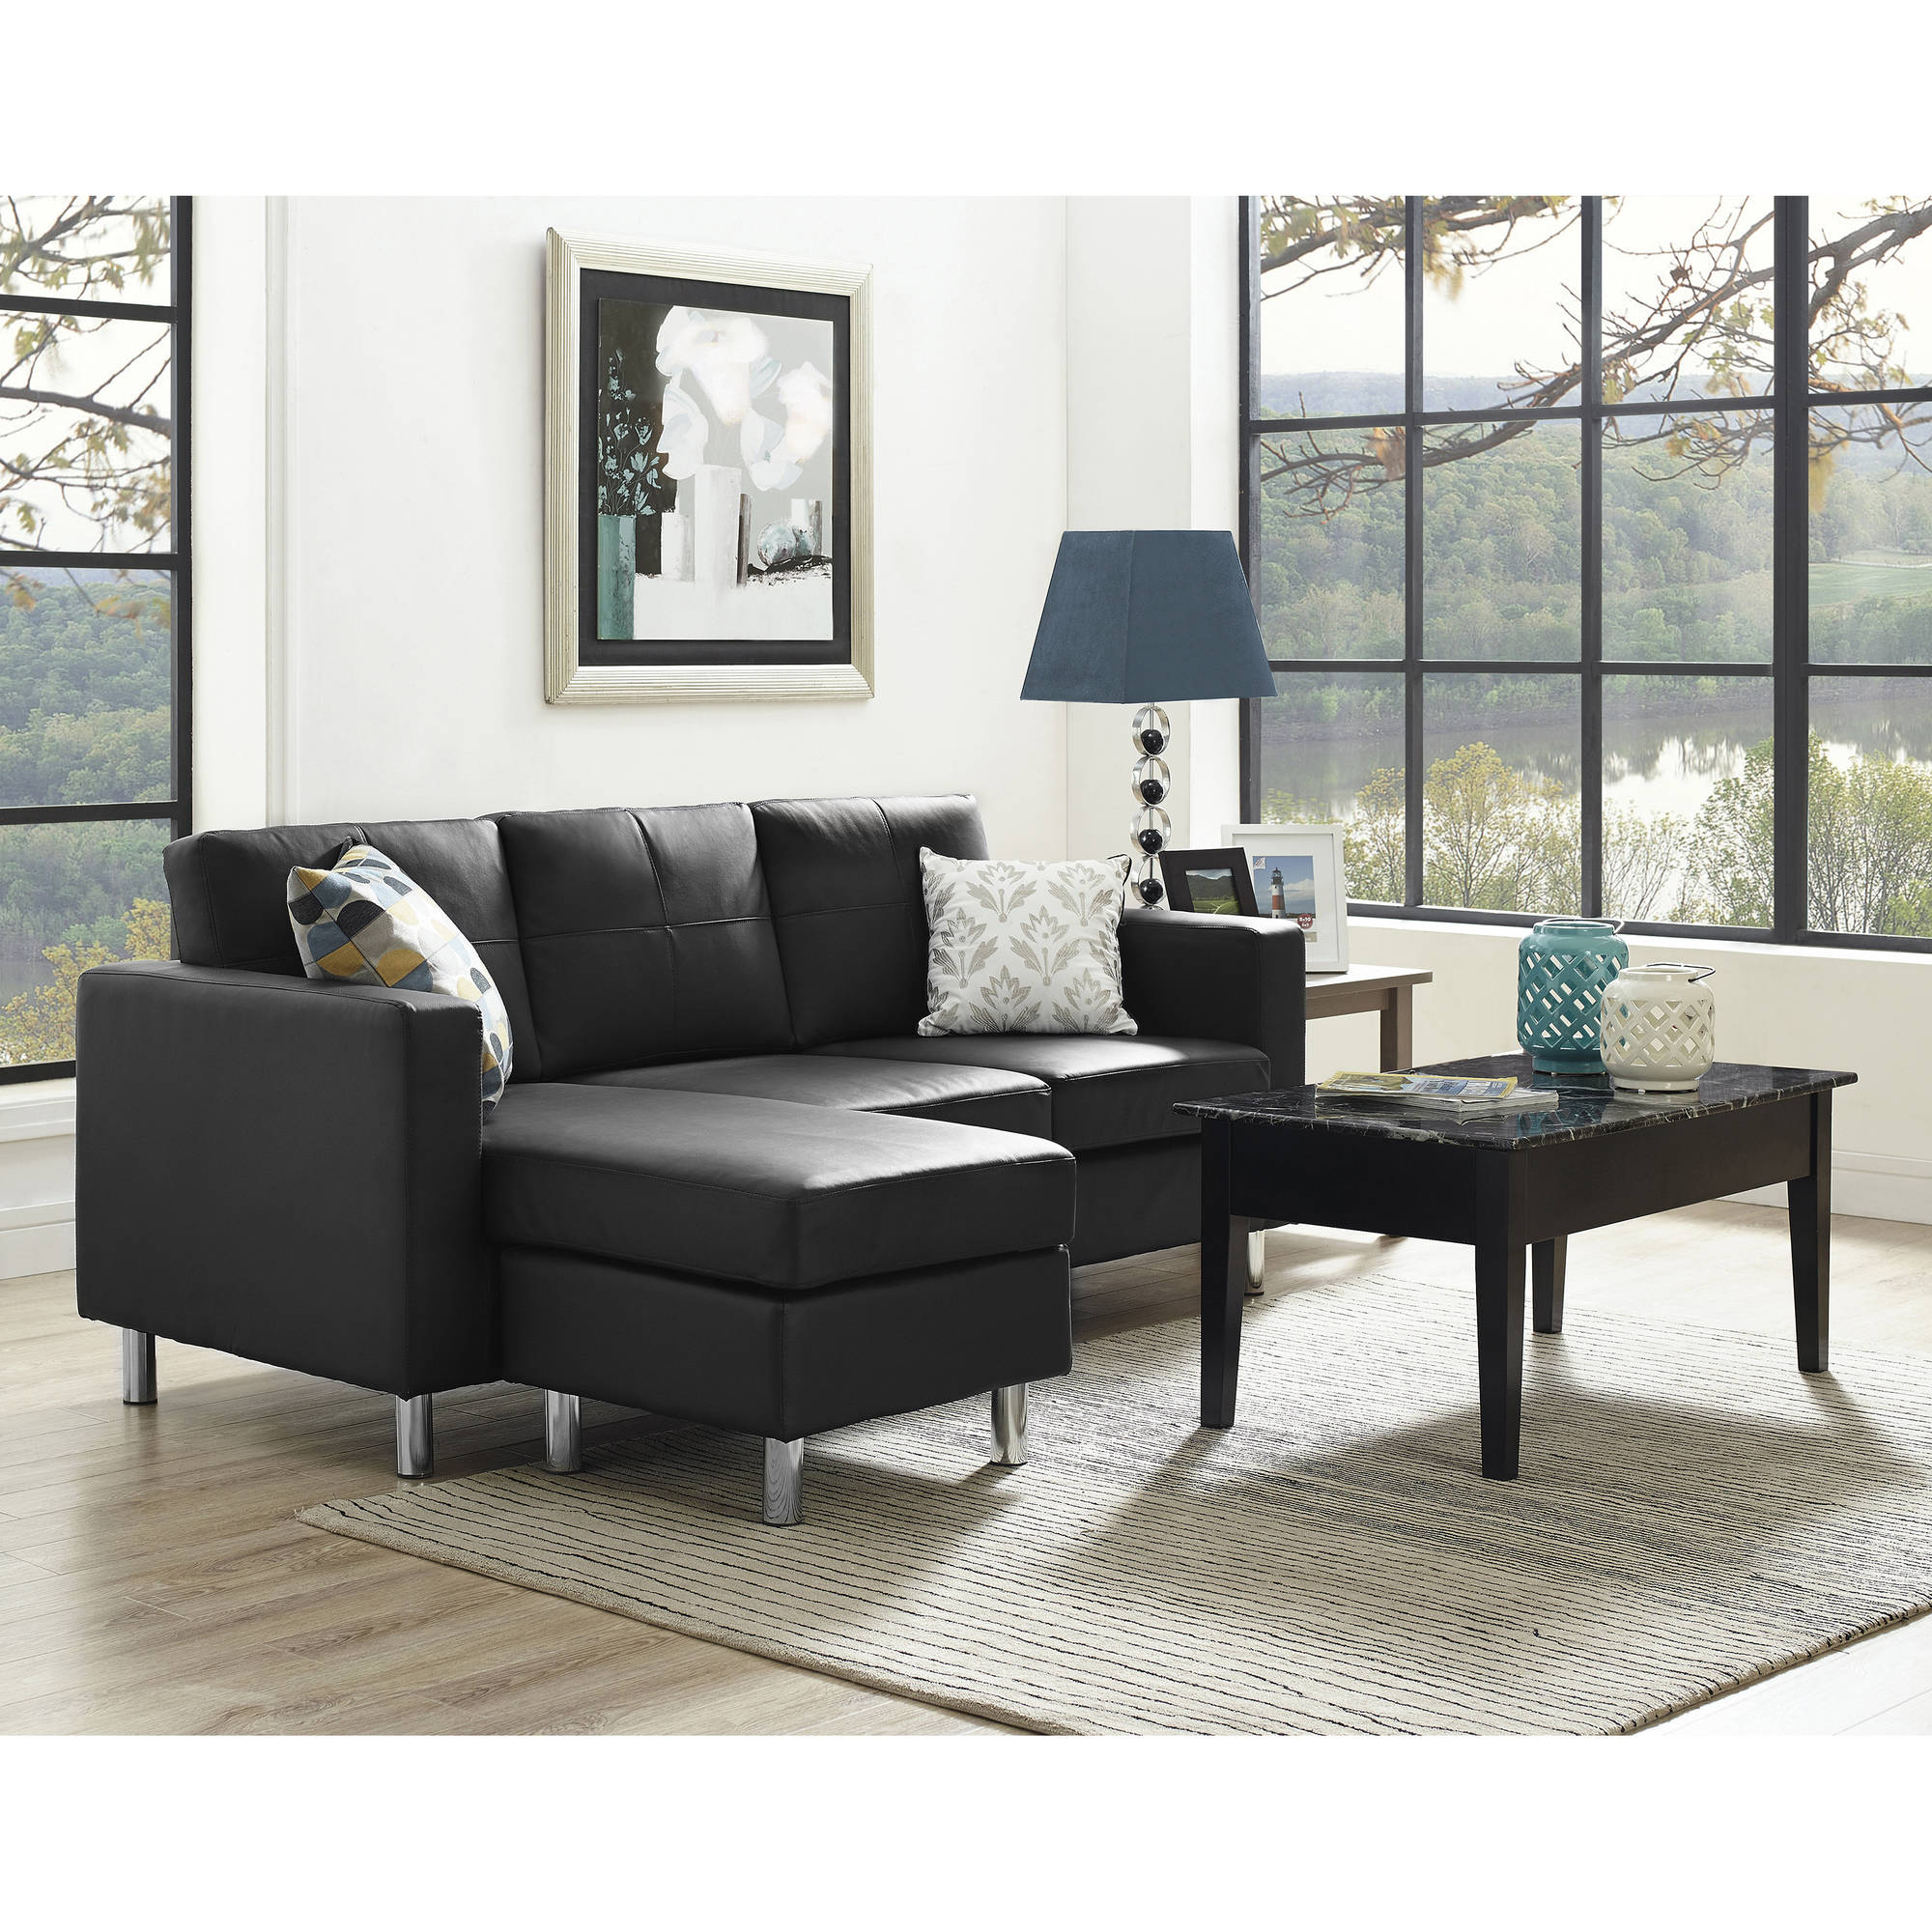 Dorel Living Small Spaces Configurable Sectional Sofa Multiple Colors  sc 1 st  Walmart : sectional in small room - Sectionals, Sofas & Couches